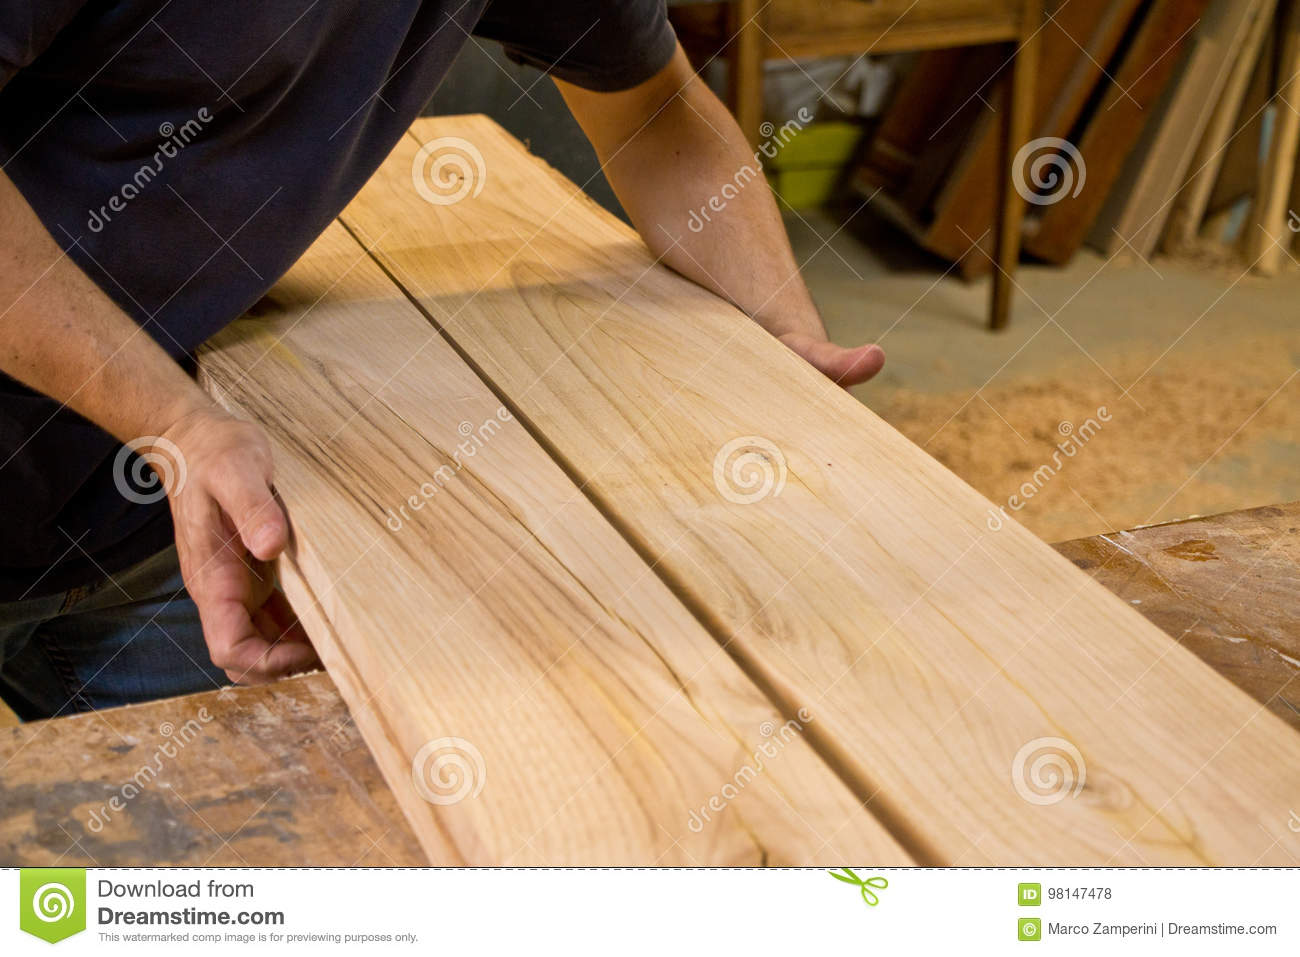 Wood joining stock photo. Image of industry, board, carpenter - 98147478